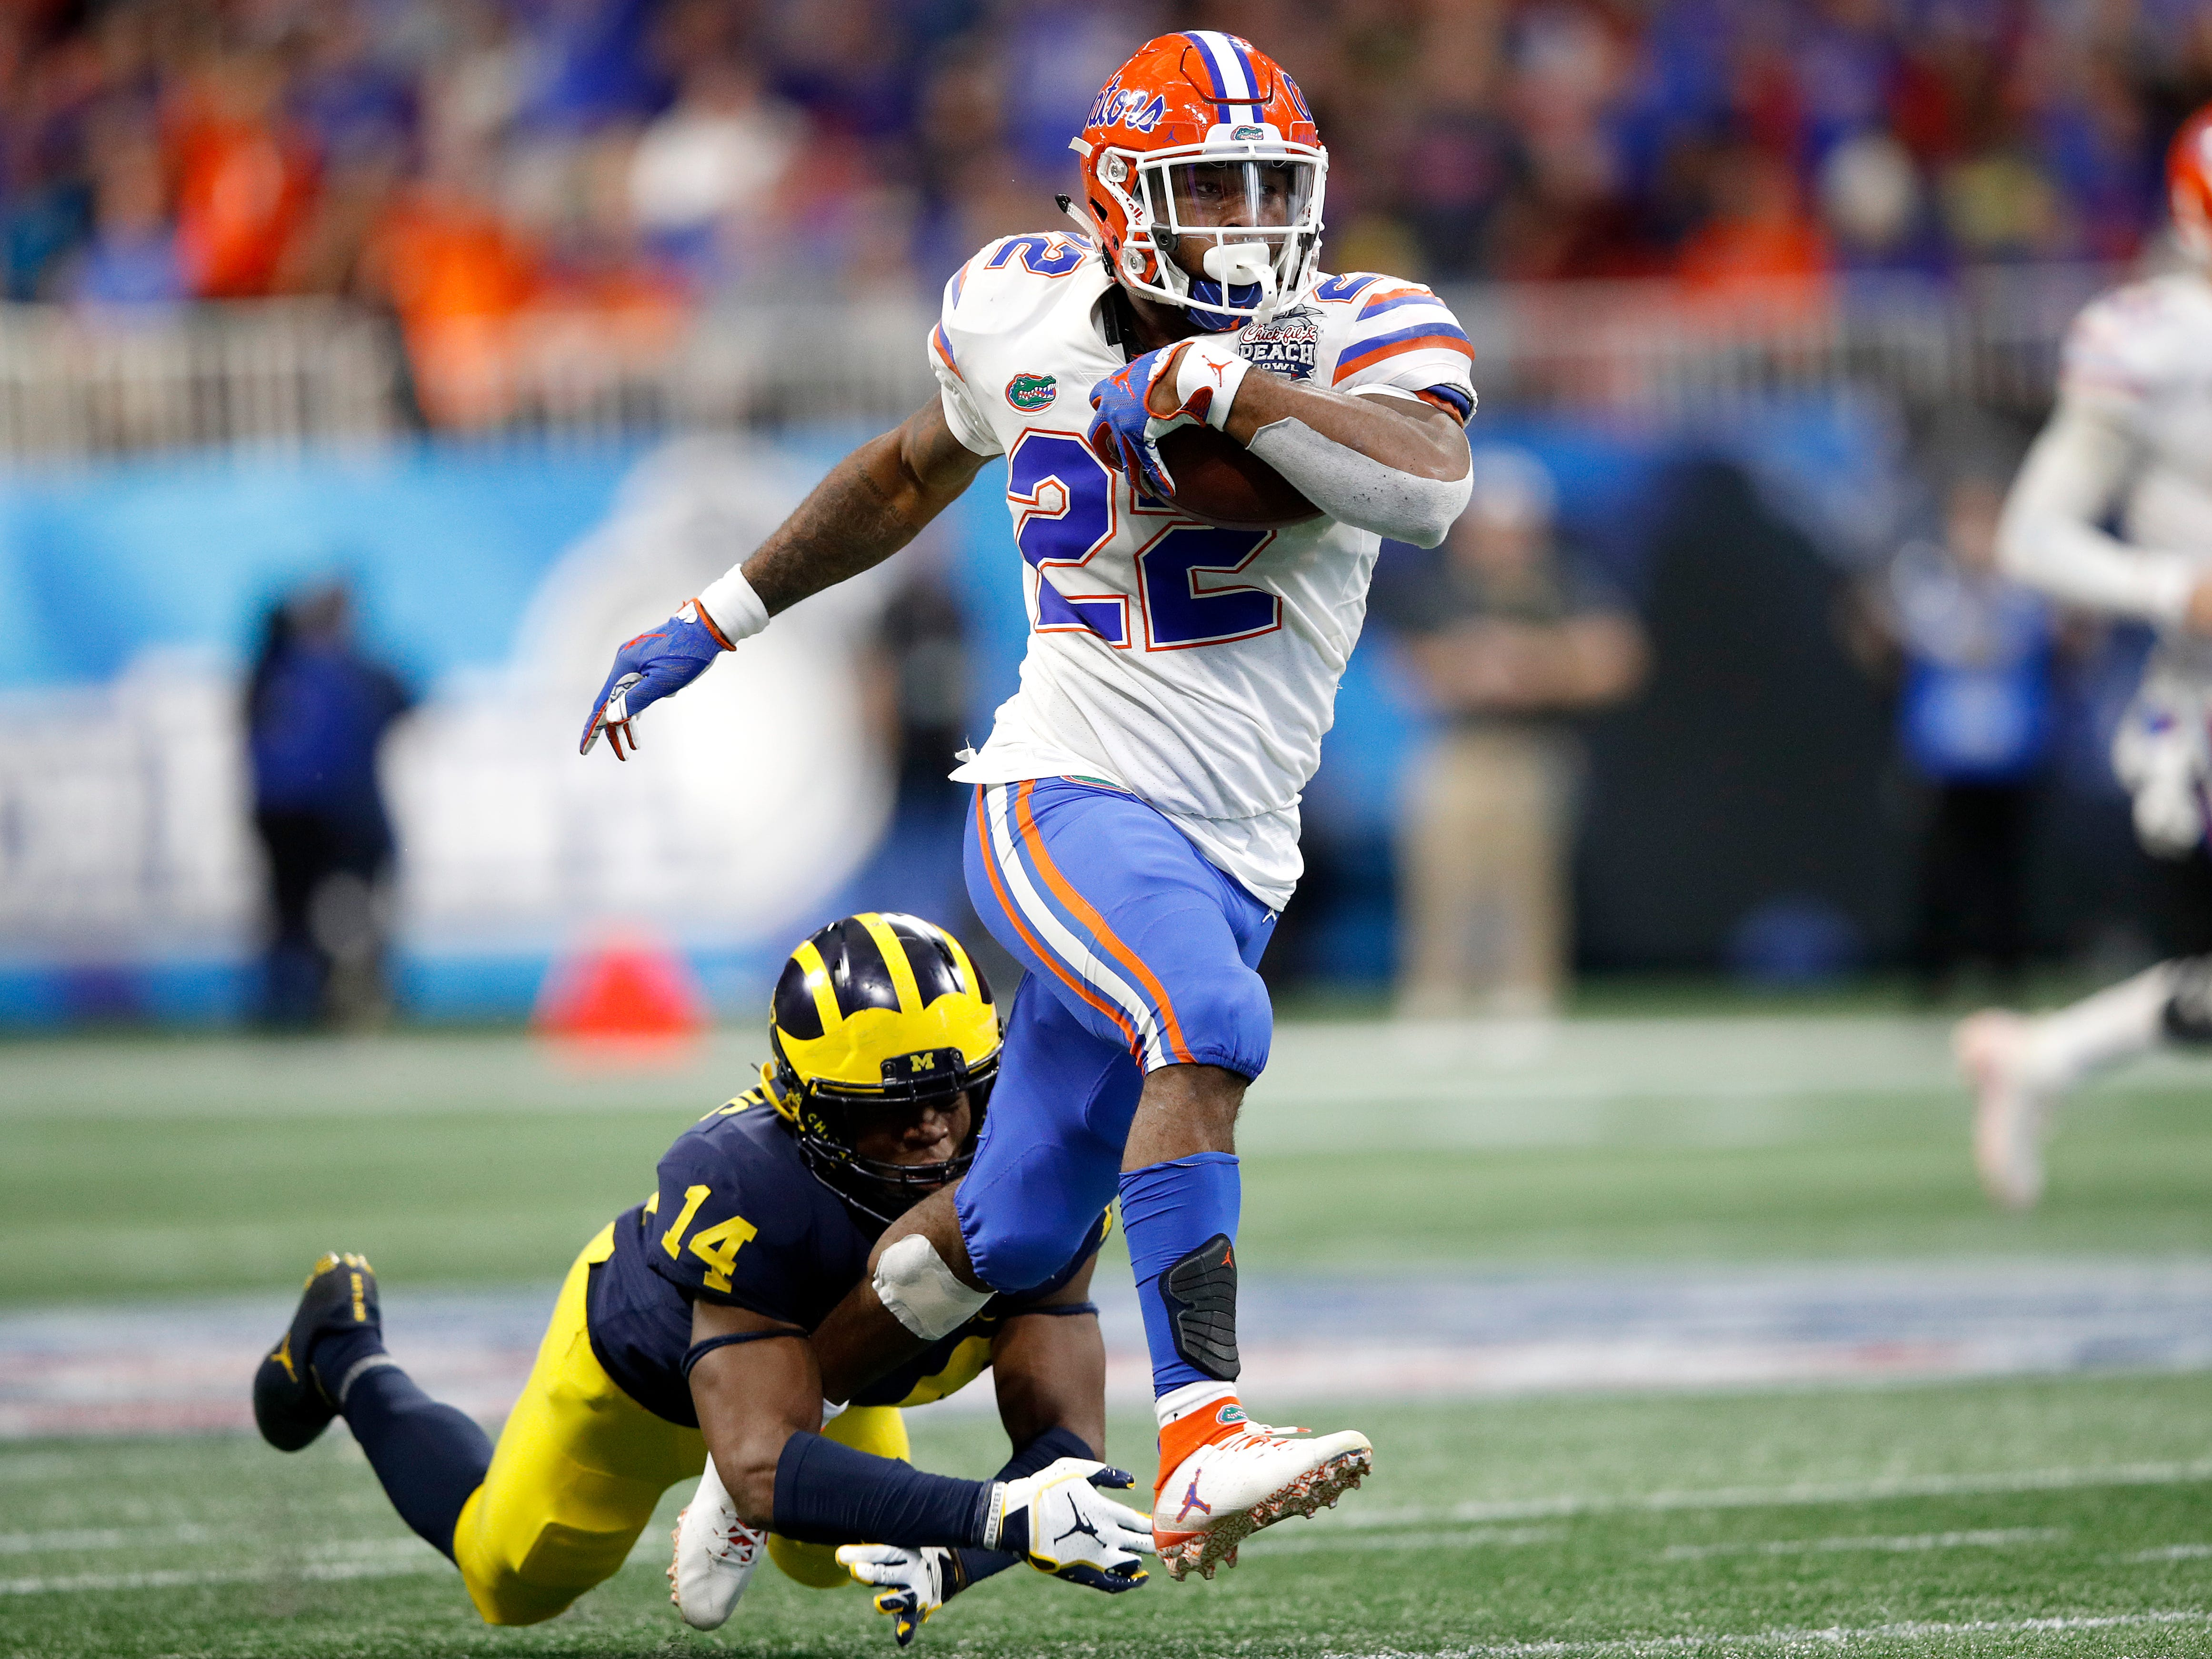 Florida running back Lamical Perine escapes the tackle attempt of Michigan's Josh Metellus and runs for a fourth quarter touchdown during the first half on Saturday, Dec. 29, 2018, in Atlanta.